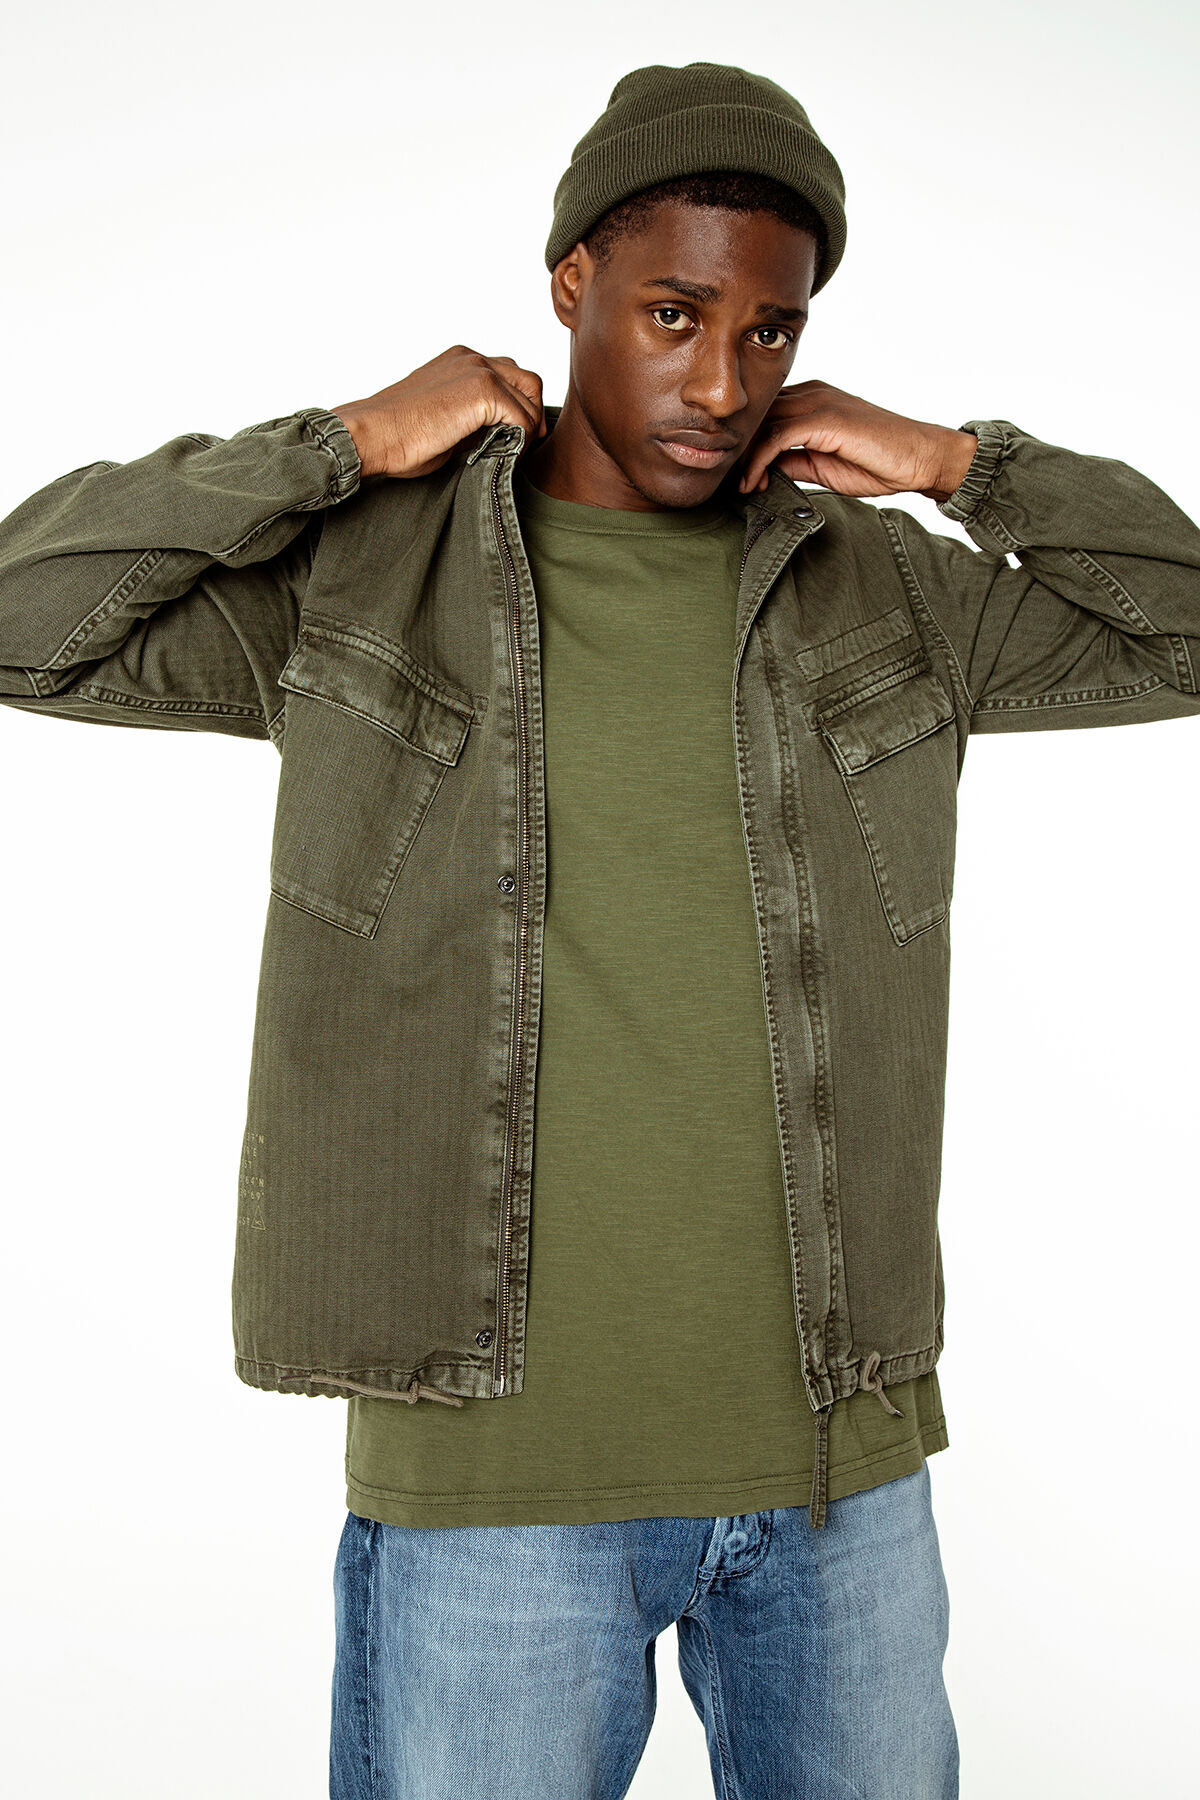 ENDERS ARMY SHIRT Military-inspired - Regular Fit